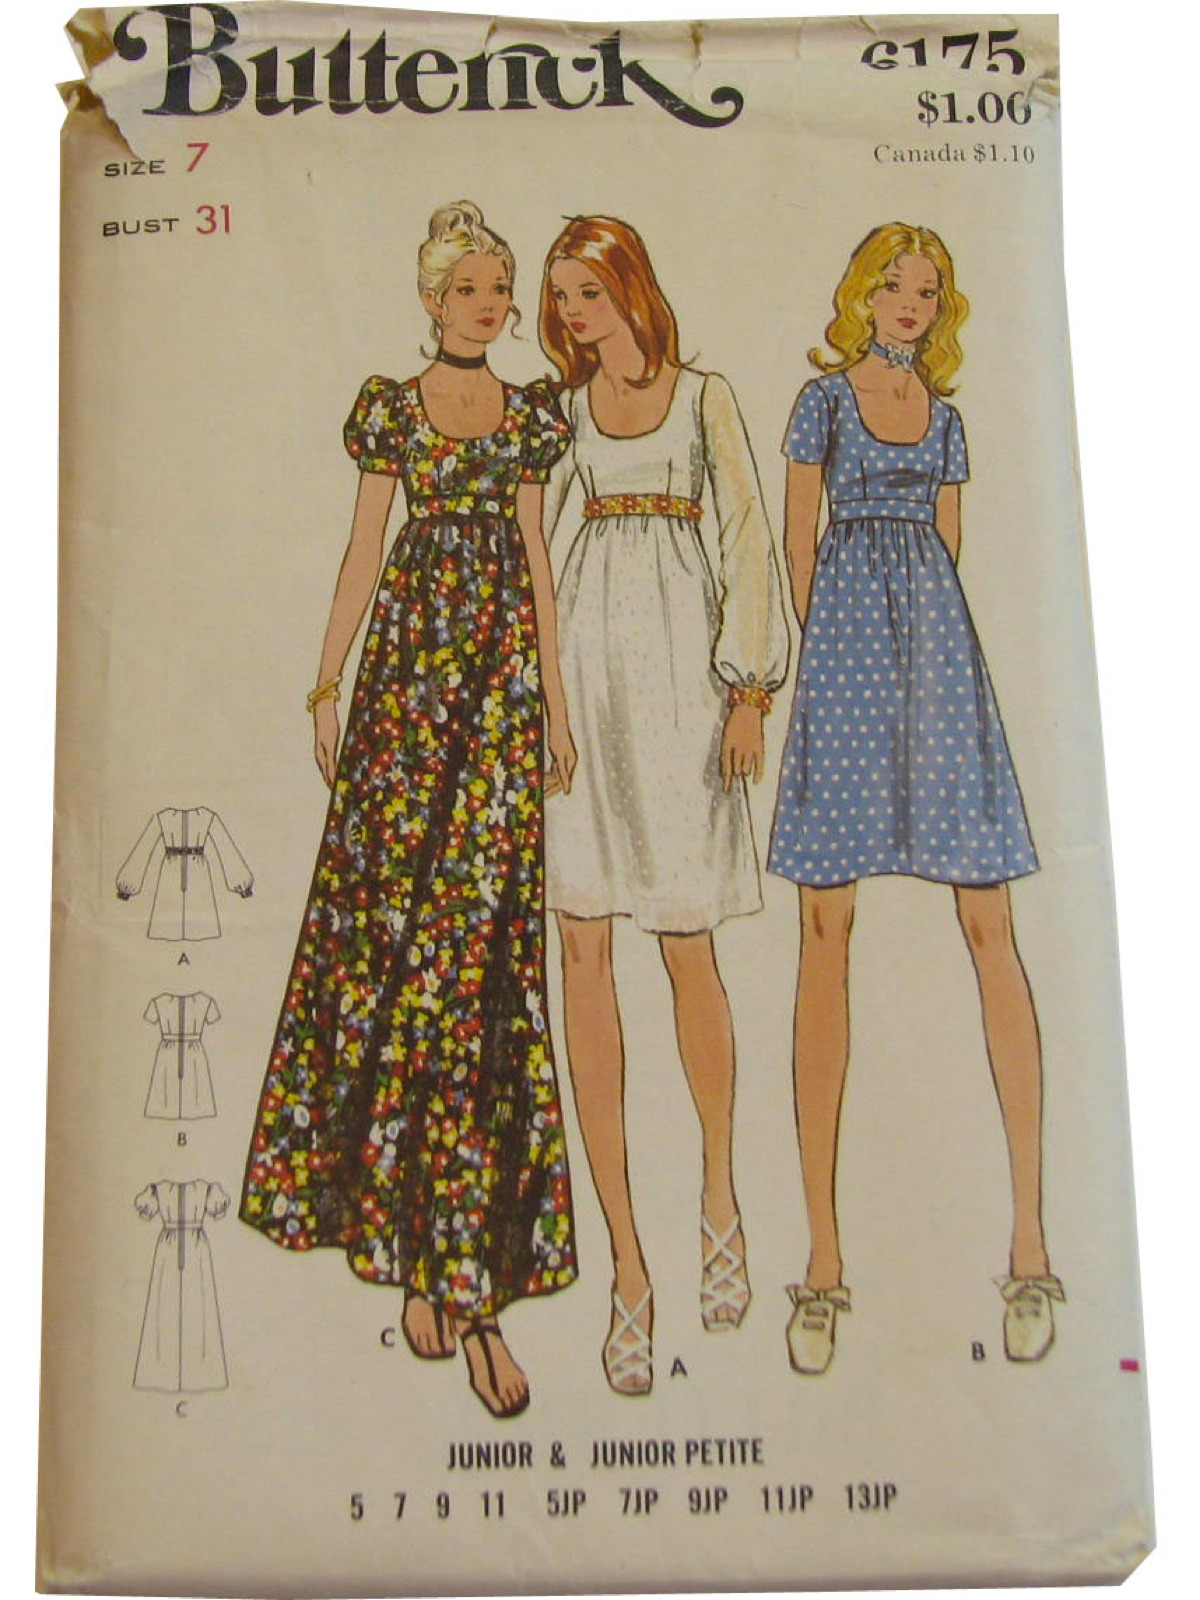 Retro 70s Sewing Pattern Butterick 6175 70s Butterick